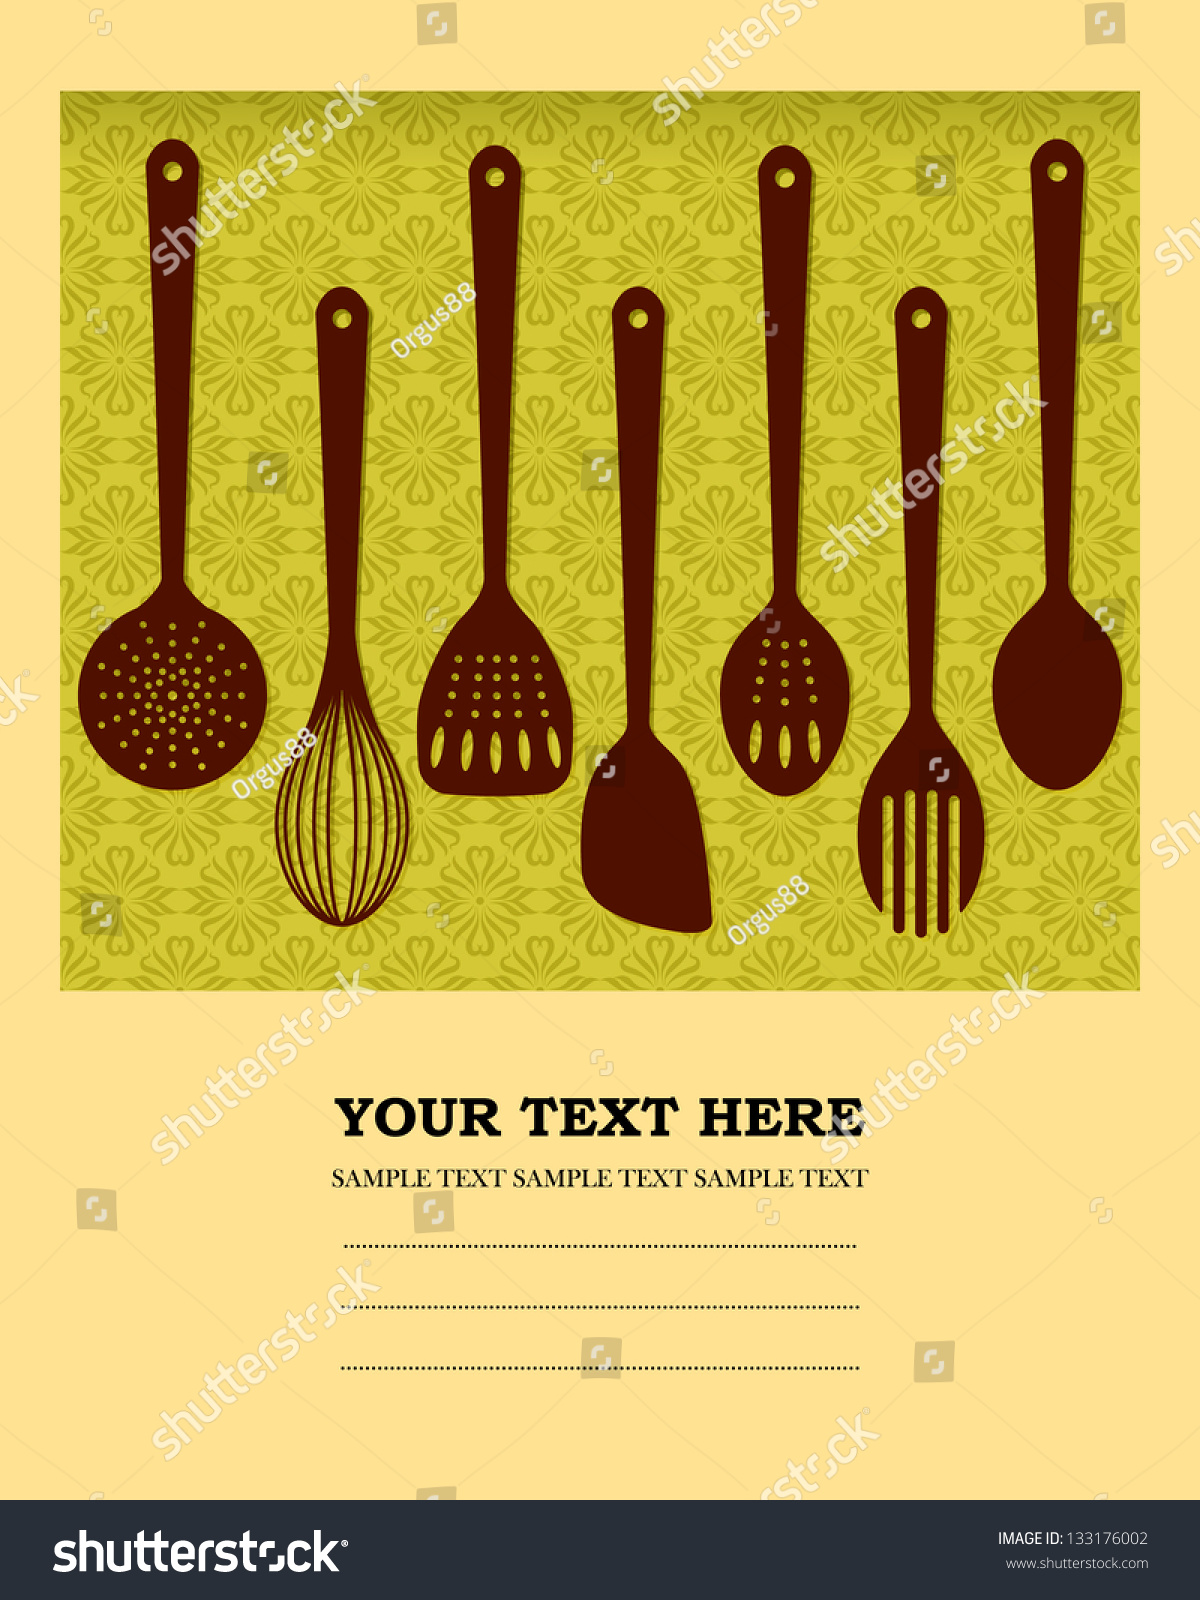 Cookbook Covers Design ~ Vector cooking book cover design stock